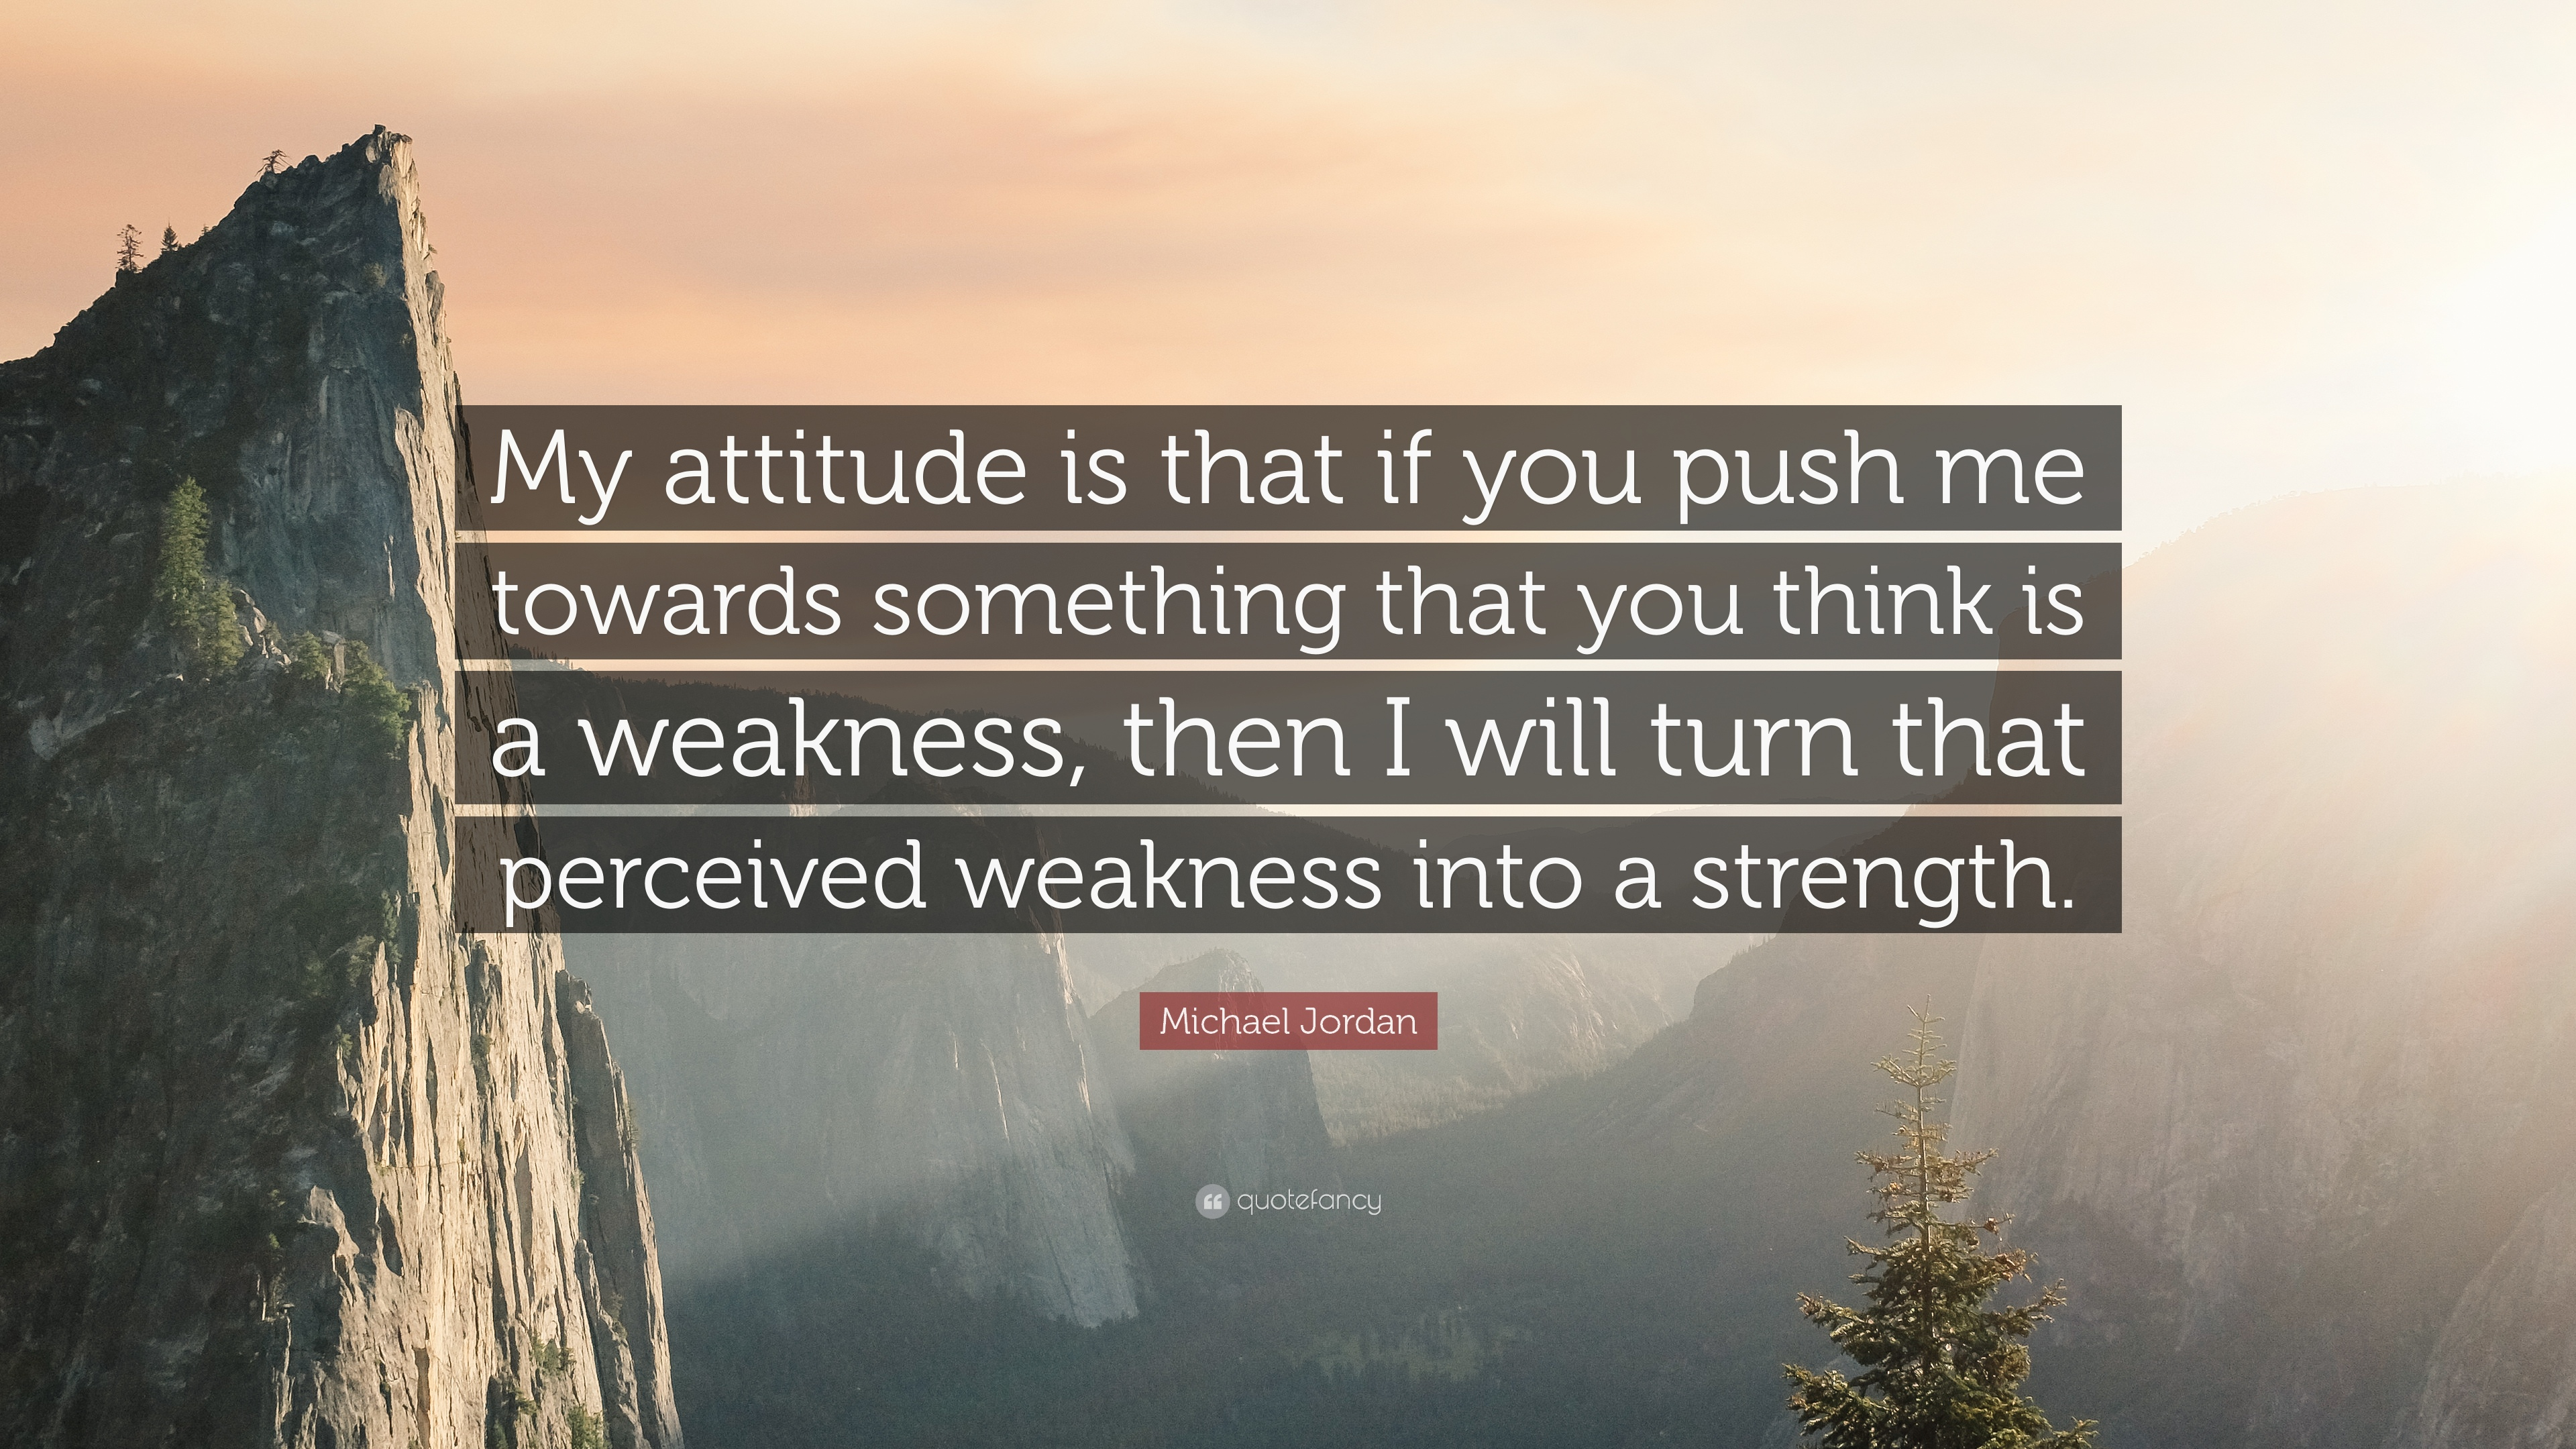 """Michael Jordan Quote: """"My attitude is that if you push me towards something  that you think is a weakness, then I will turn that perceived weakn..."""" (16  wallpapers) - Quotefancy"""